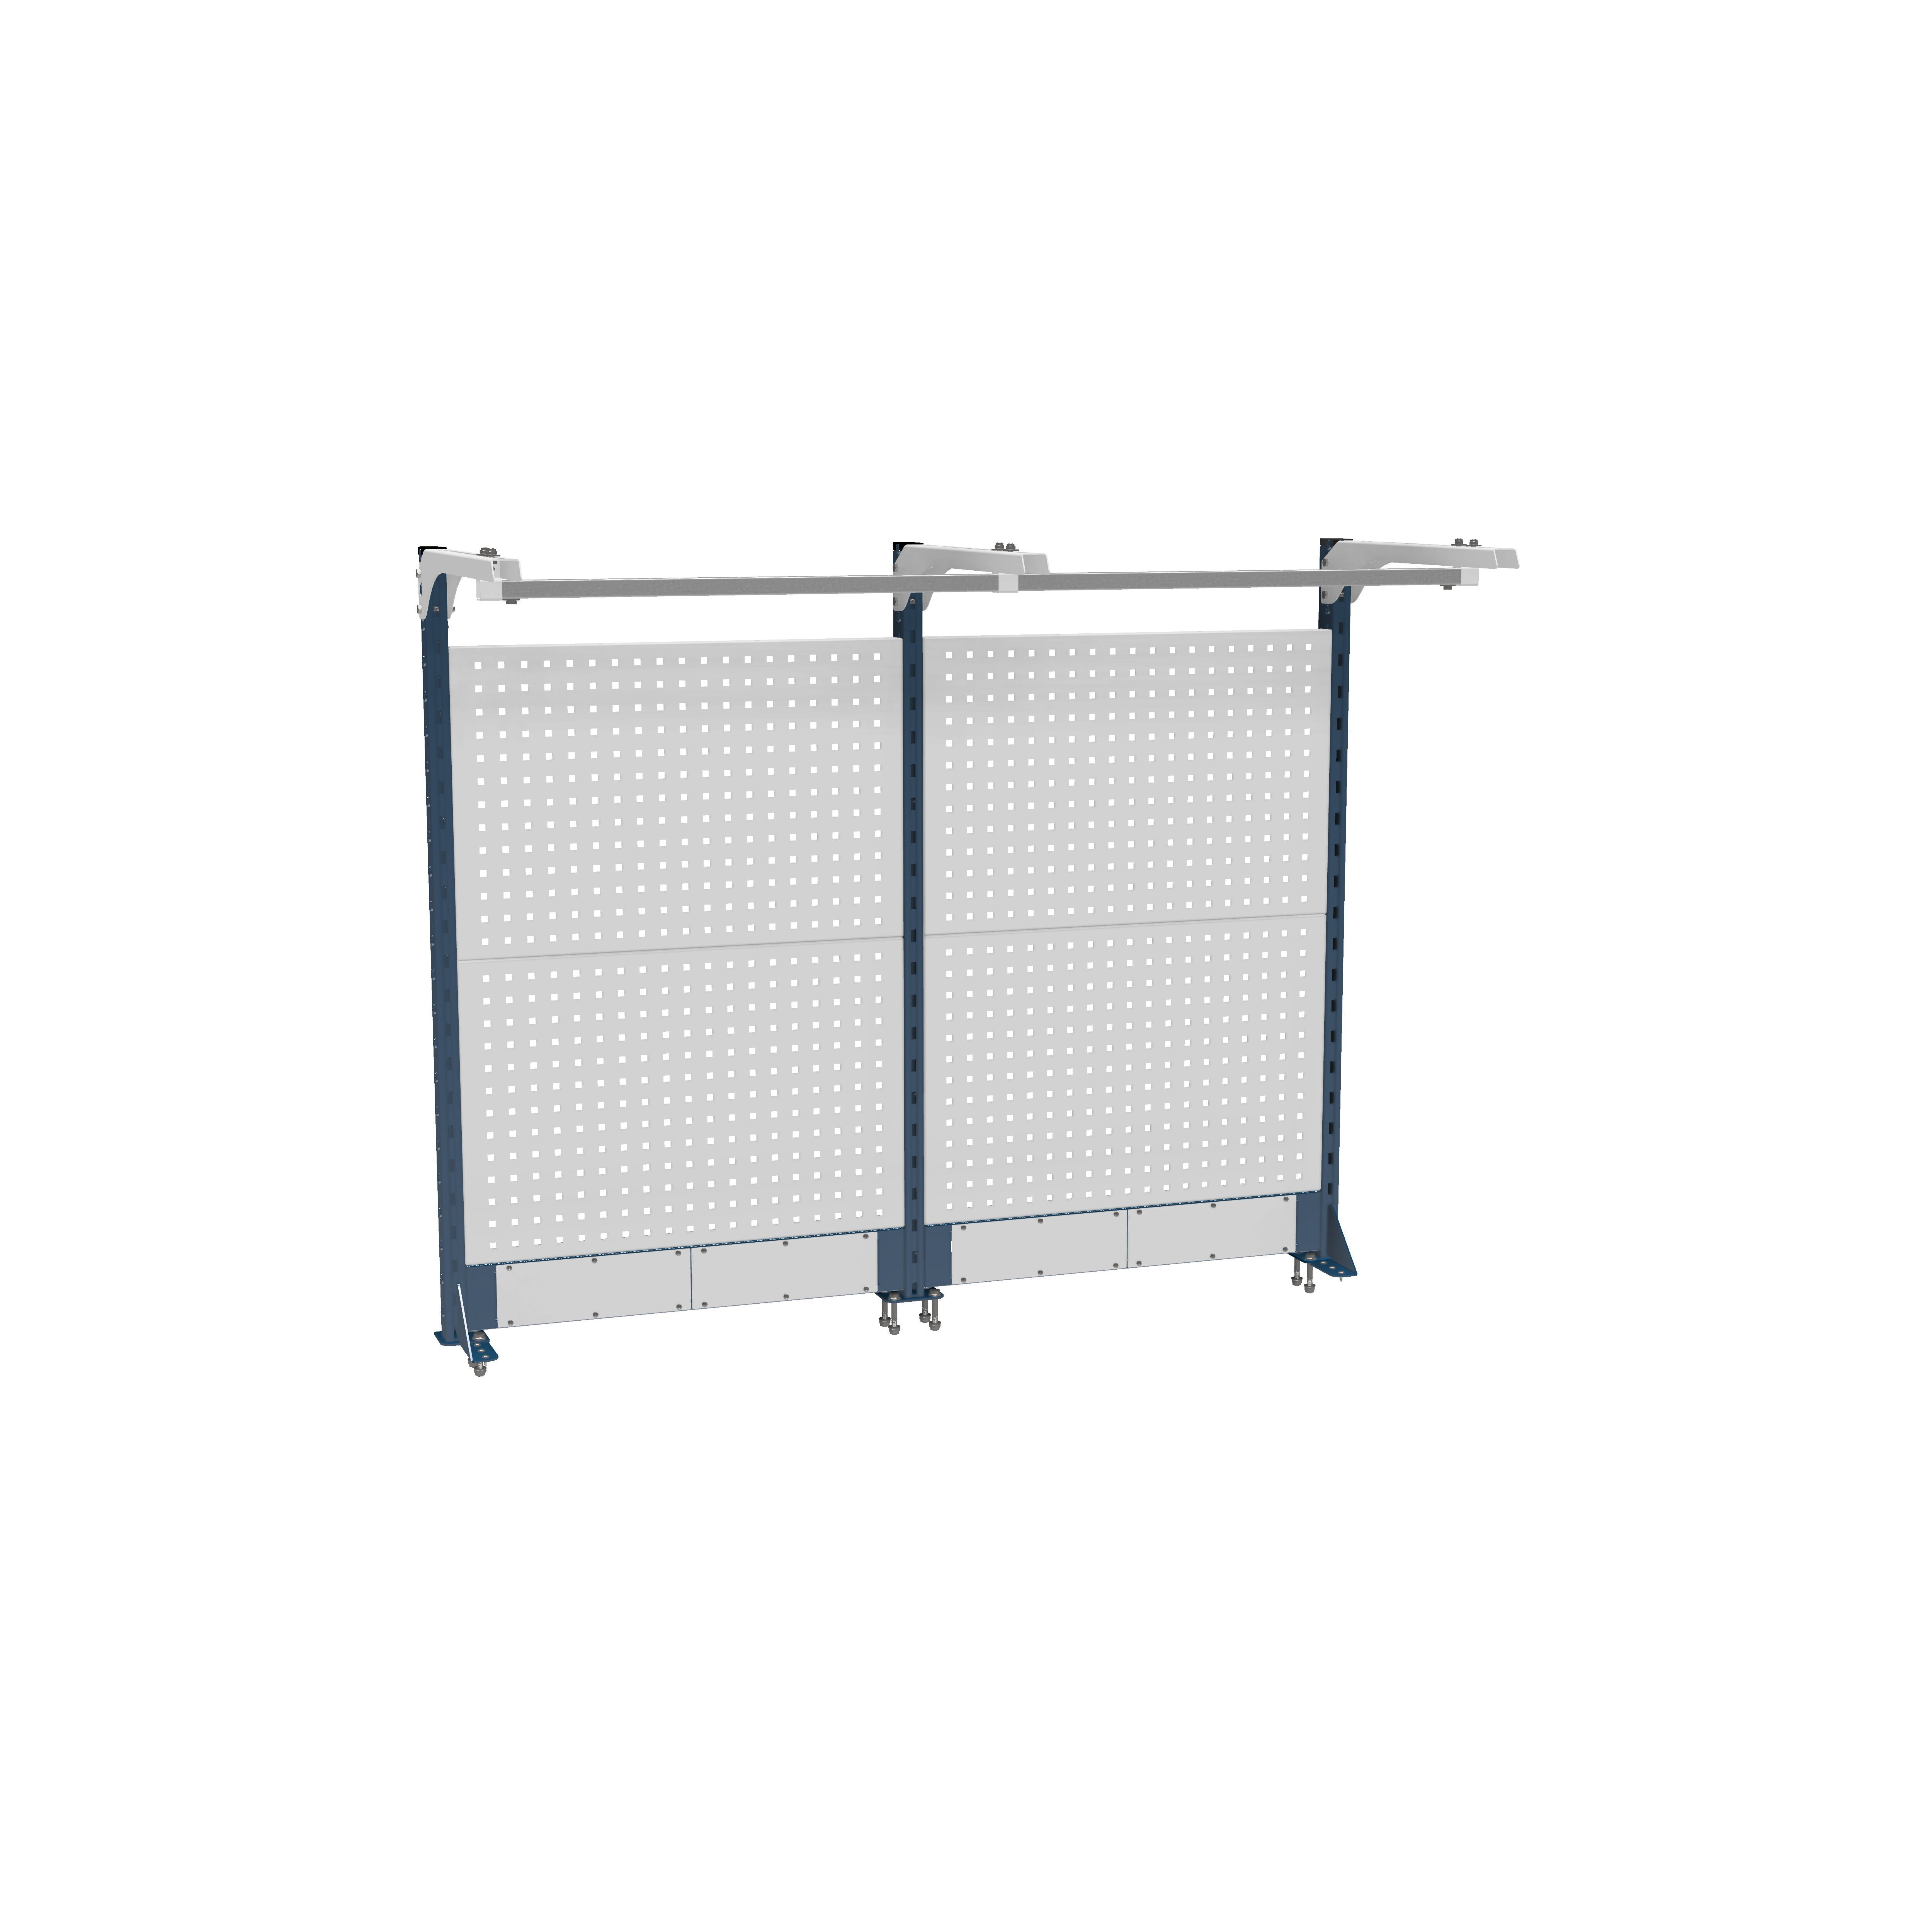 DiKom Perforated Panel VS-150-E3